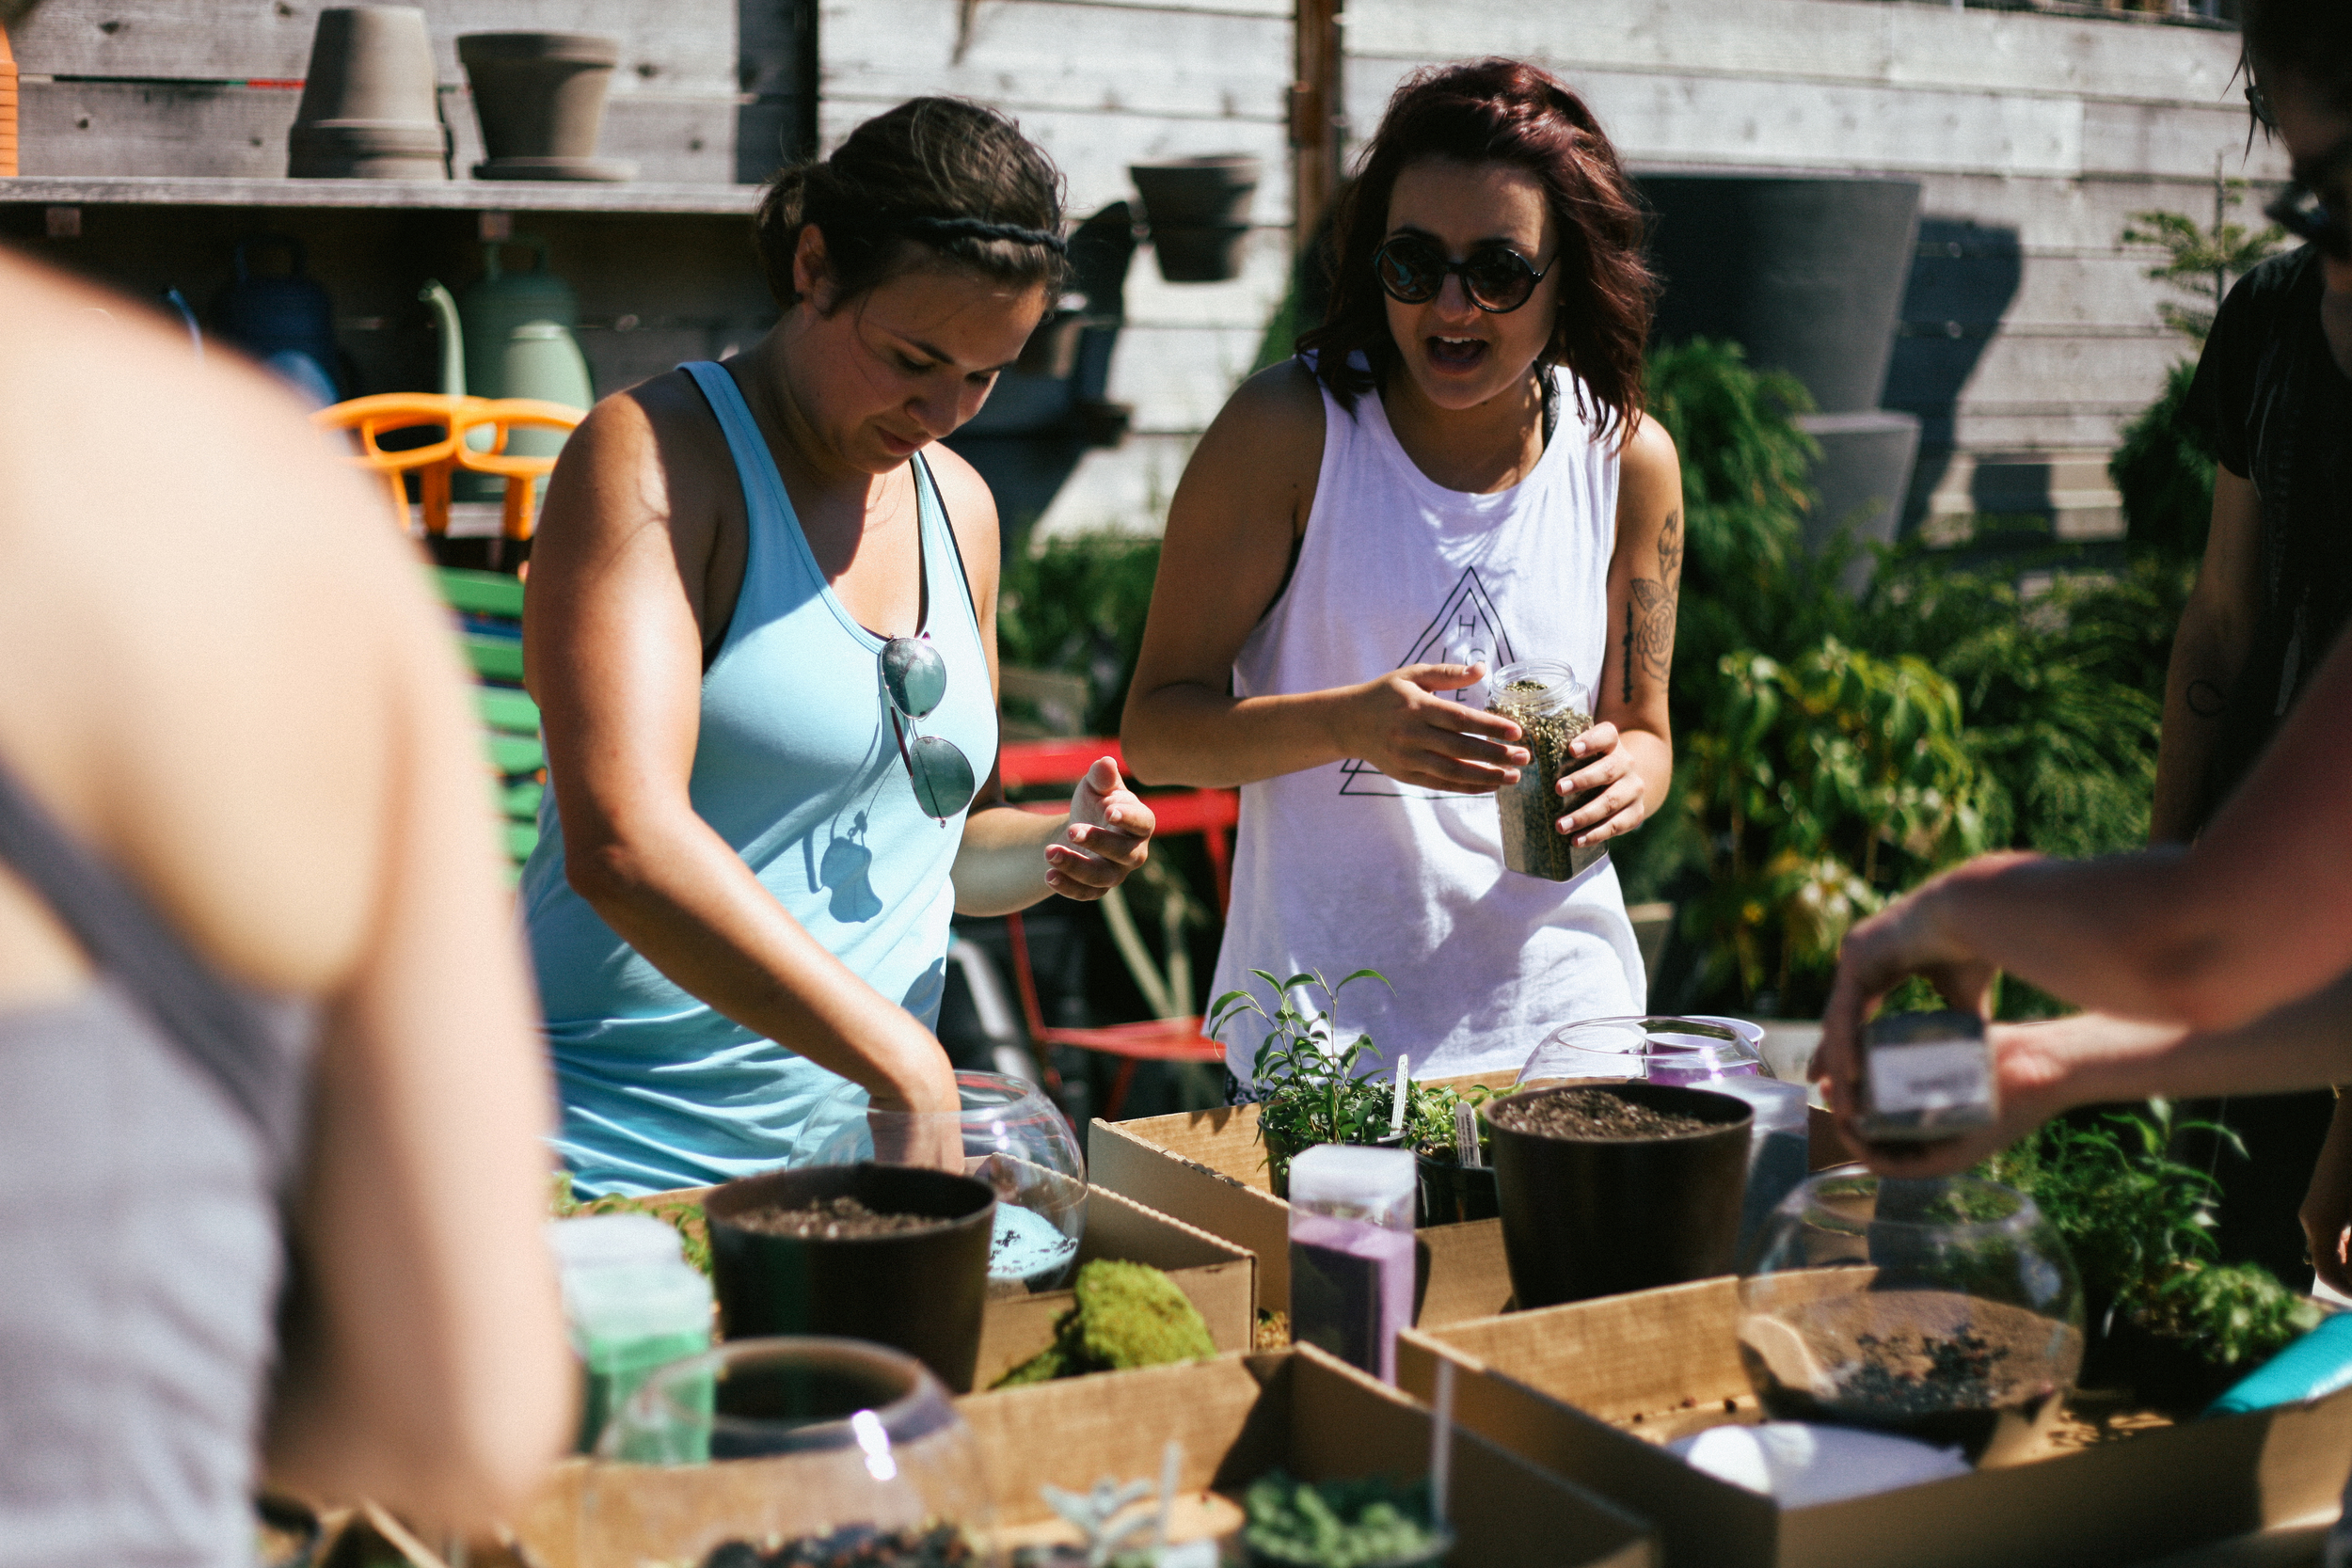 yoga-plus-sprout-home-chicago-rooftop-terrarium-building-workshop-51.jpg